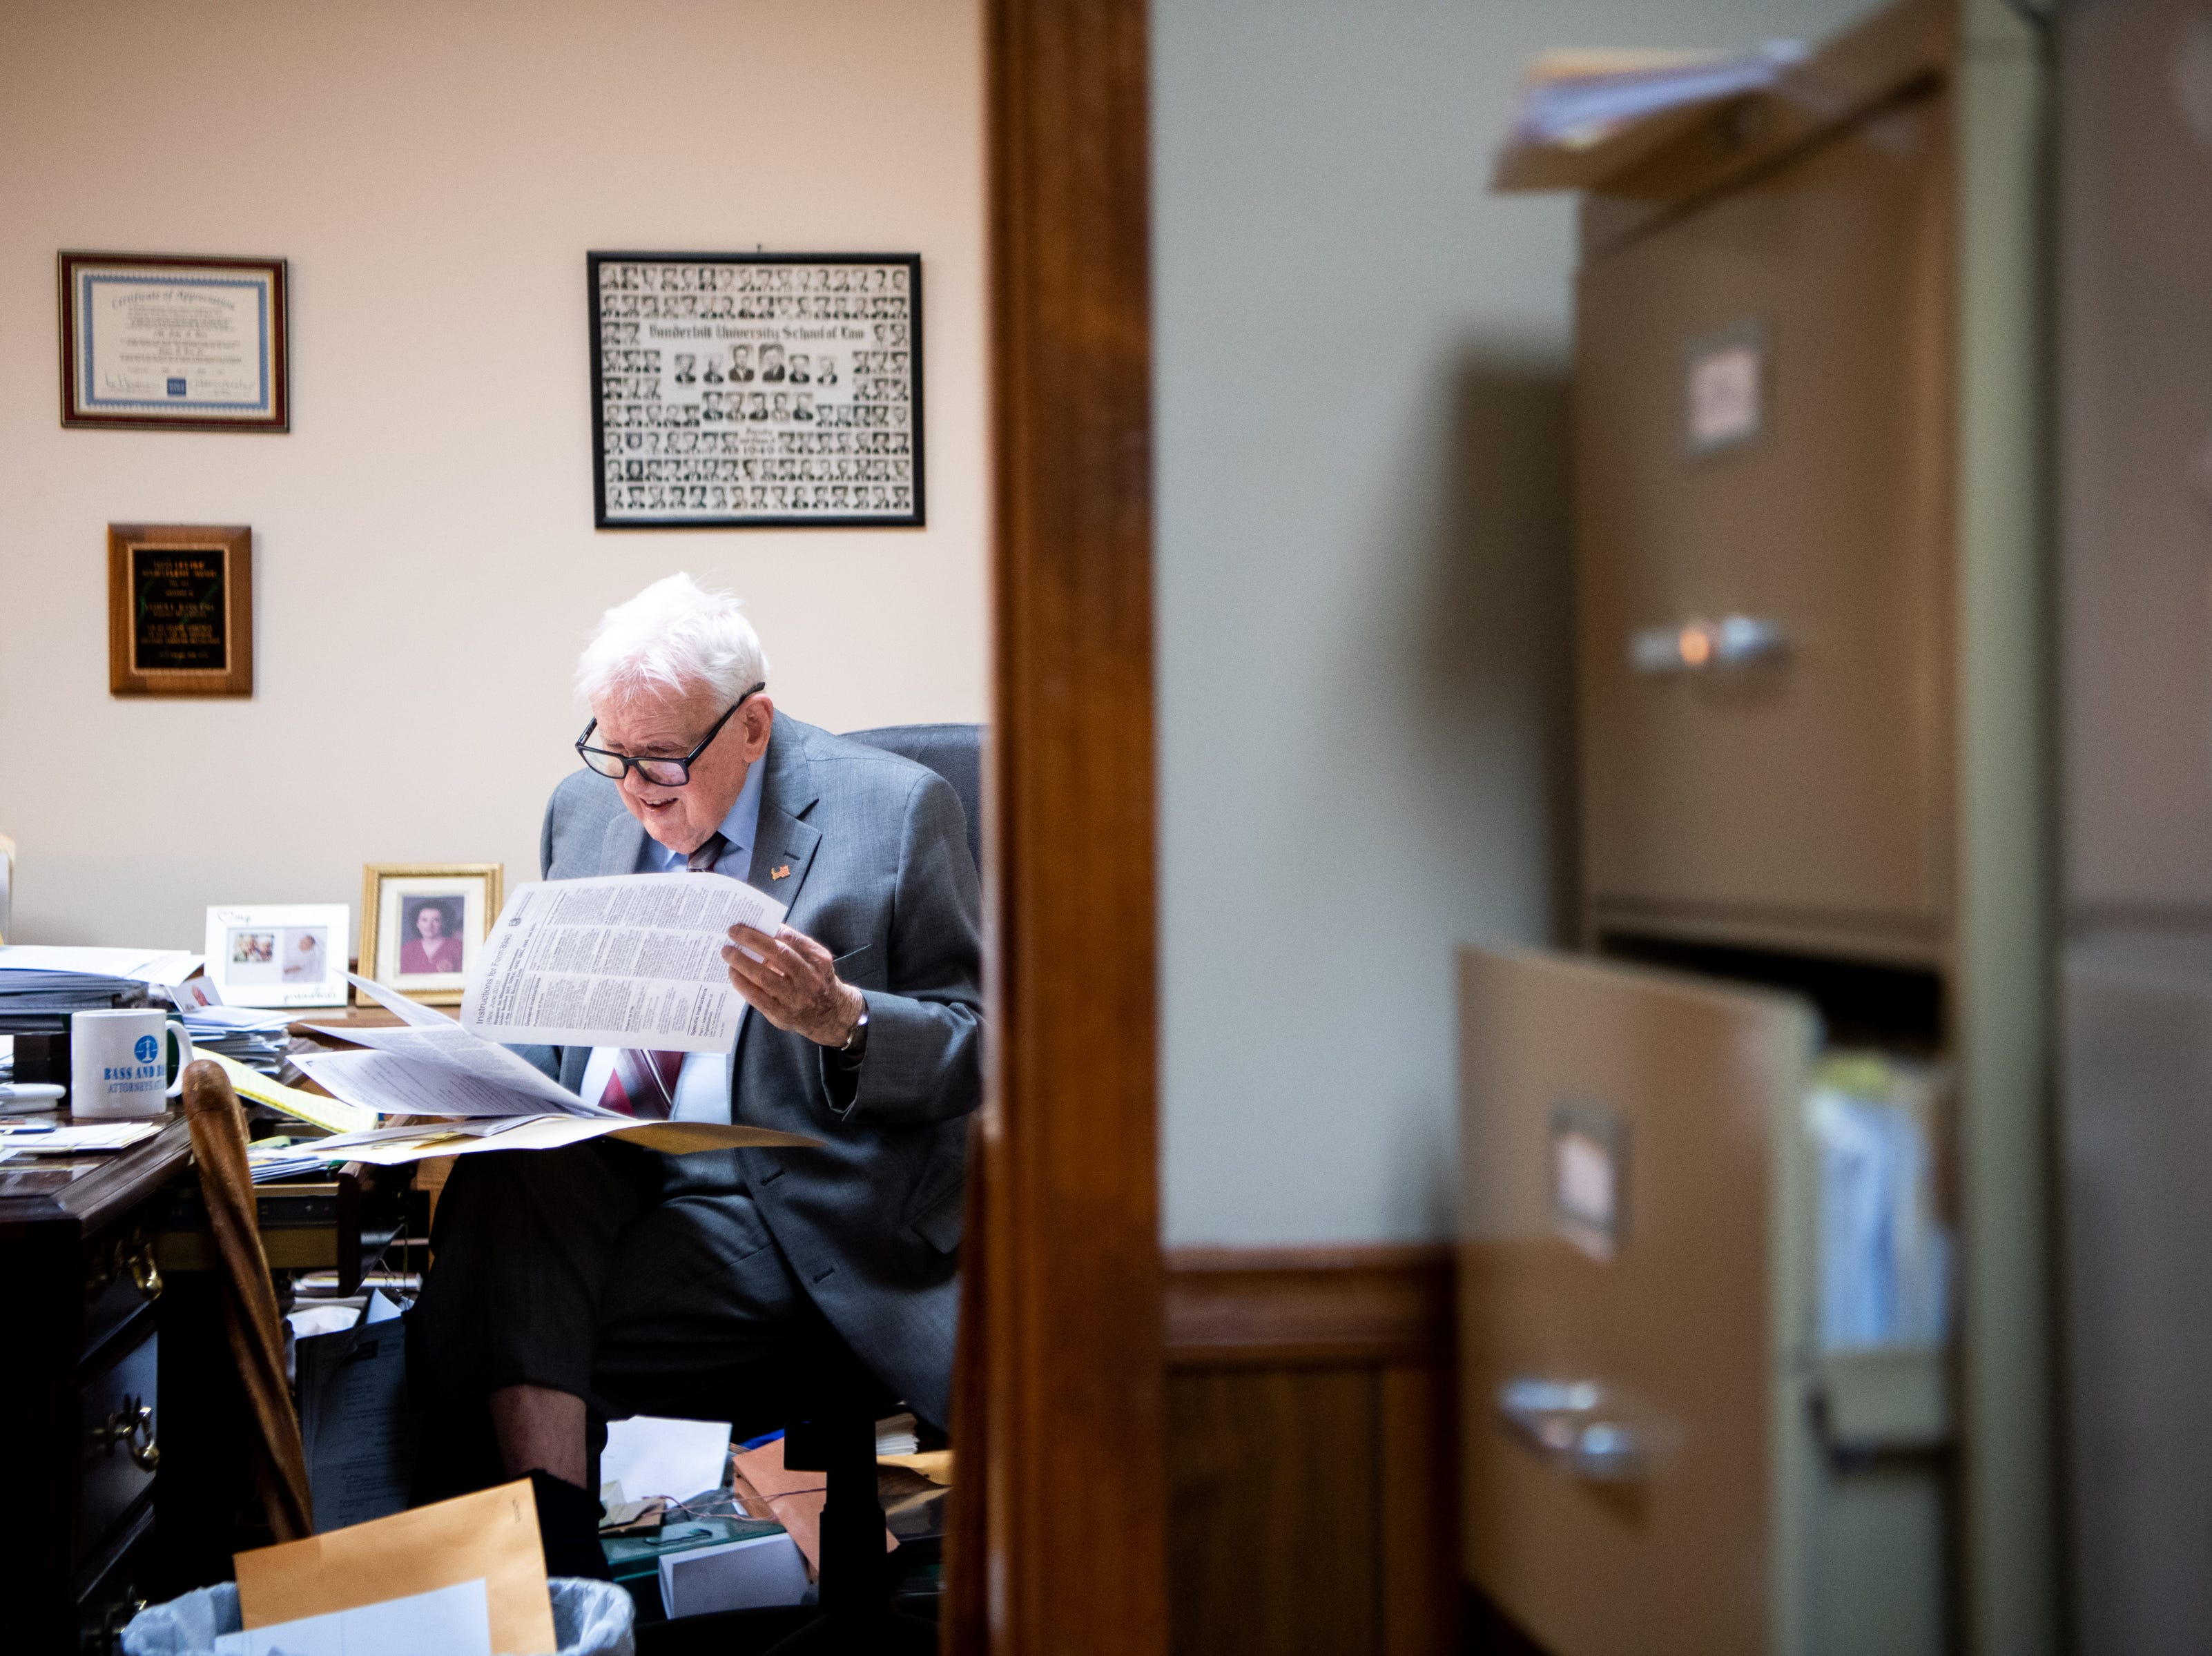 James L. Bass Jr., 97, studies the Digital Millennium Copyright Act on Friday, March 29, 2019, at Bass & Bass Attorneys At Law in Carthage, Tenn. Bass still works five days a week at the family law firm he opened 70 years ago.